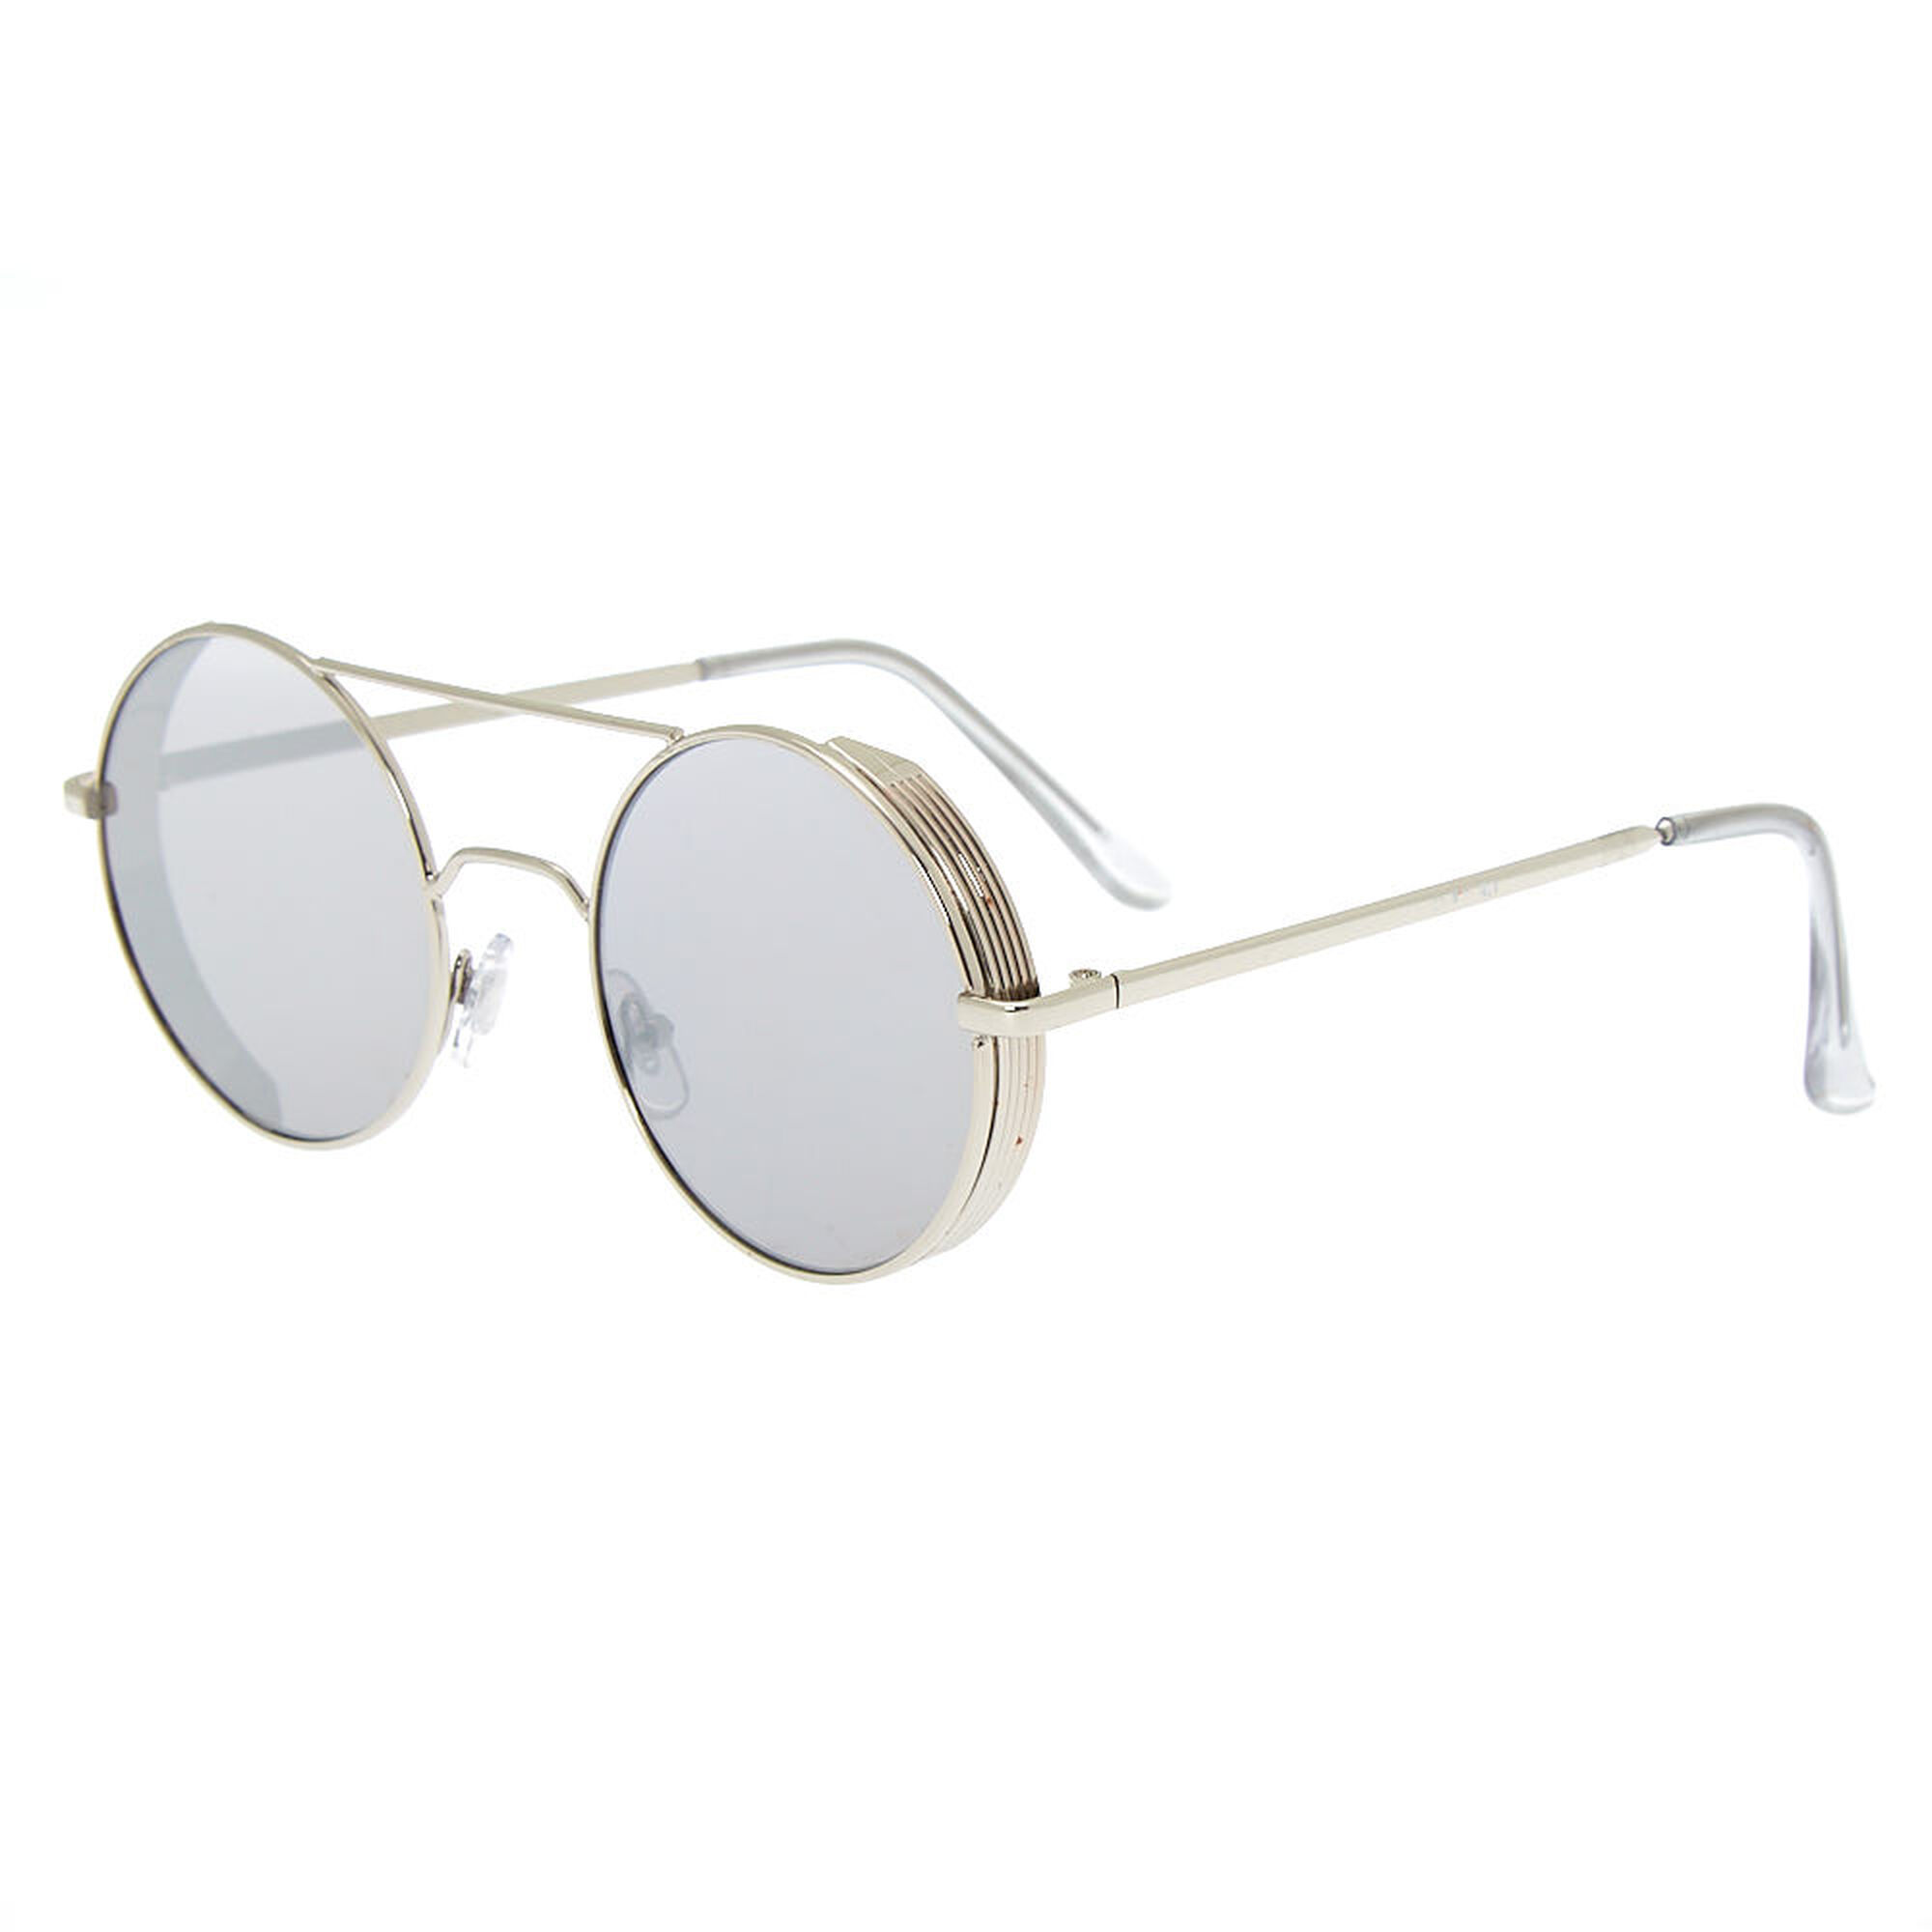 903434c89 Round Metal Frame Sunglasses - Silver | Icing US